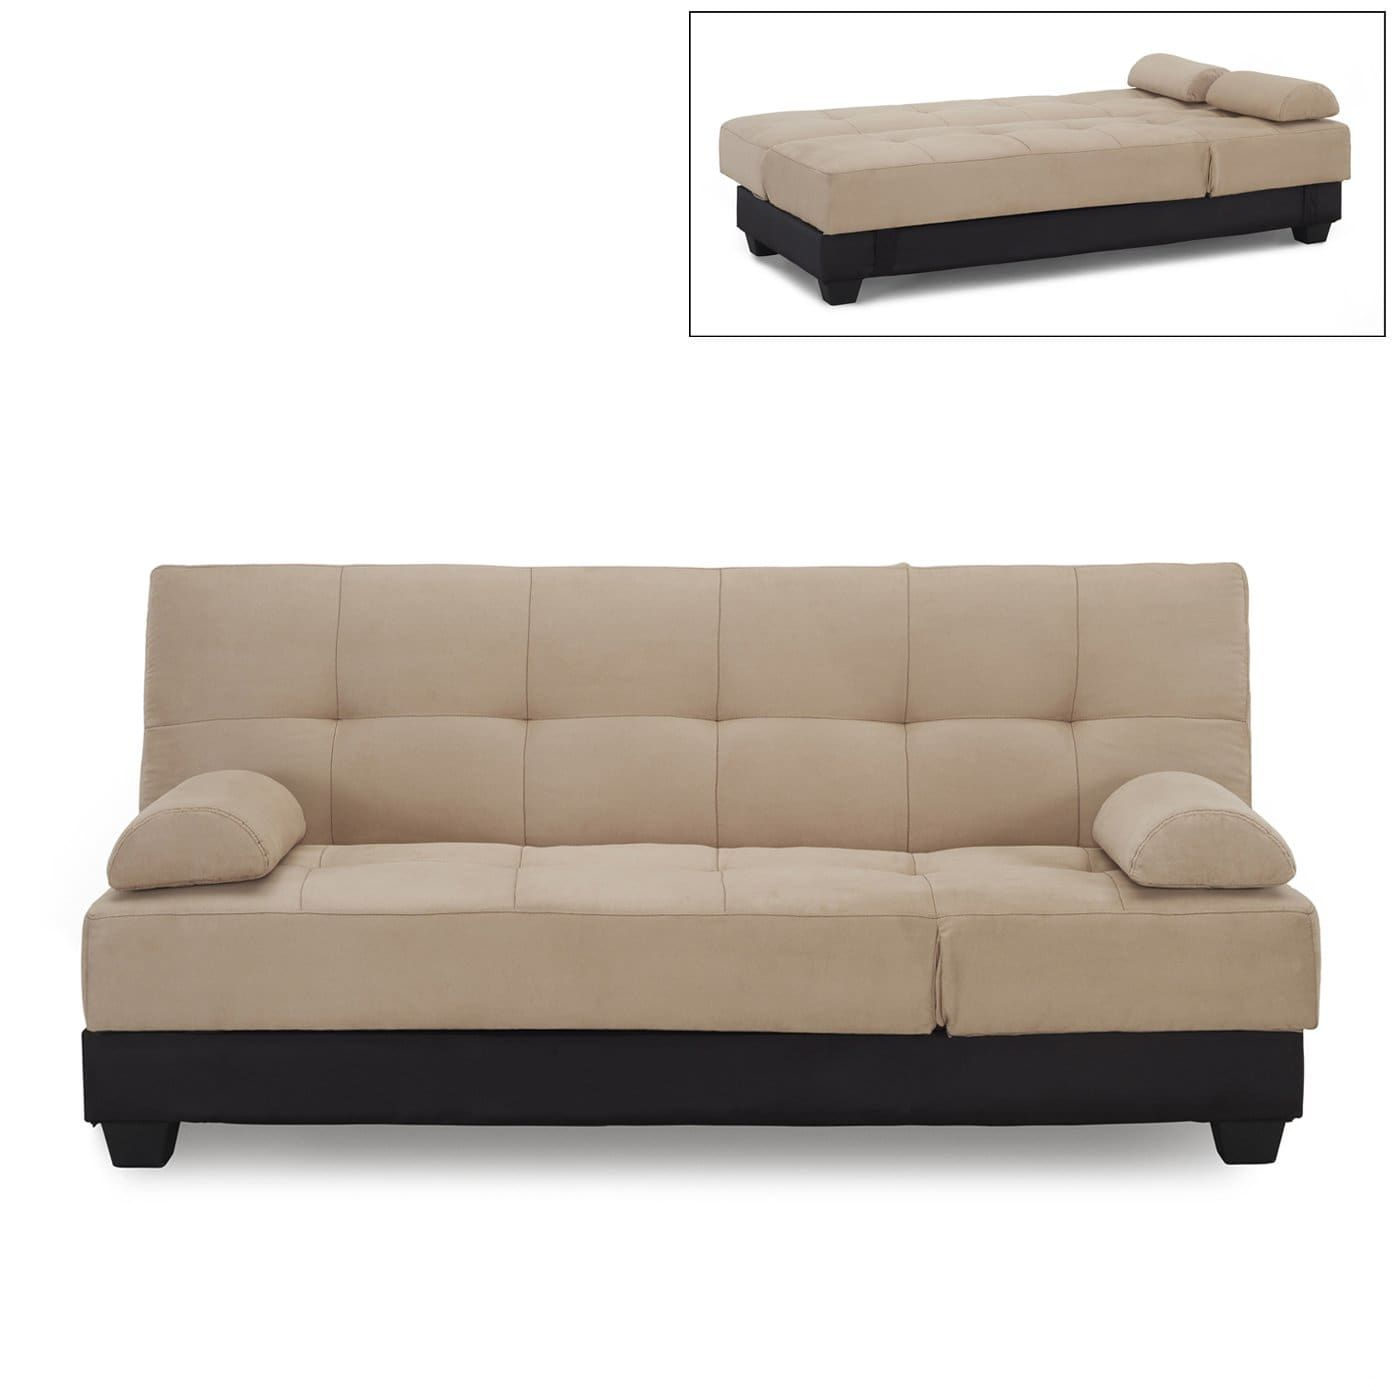 shop lifestyle solutions schvds3m2kh serta dream convertible harvard futon at the mine  browse our futons shop lifestyle solutions schvds3m2kh serta dream convertible      rh   pinterest